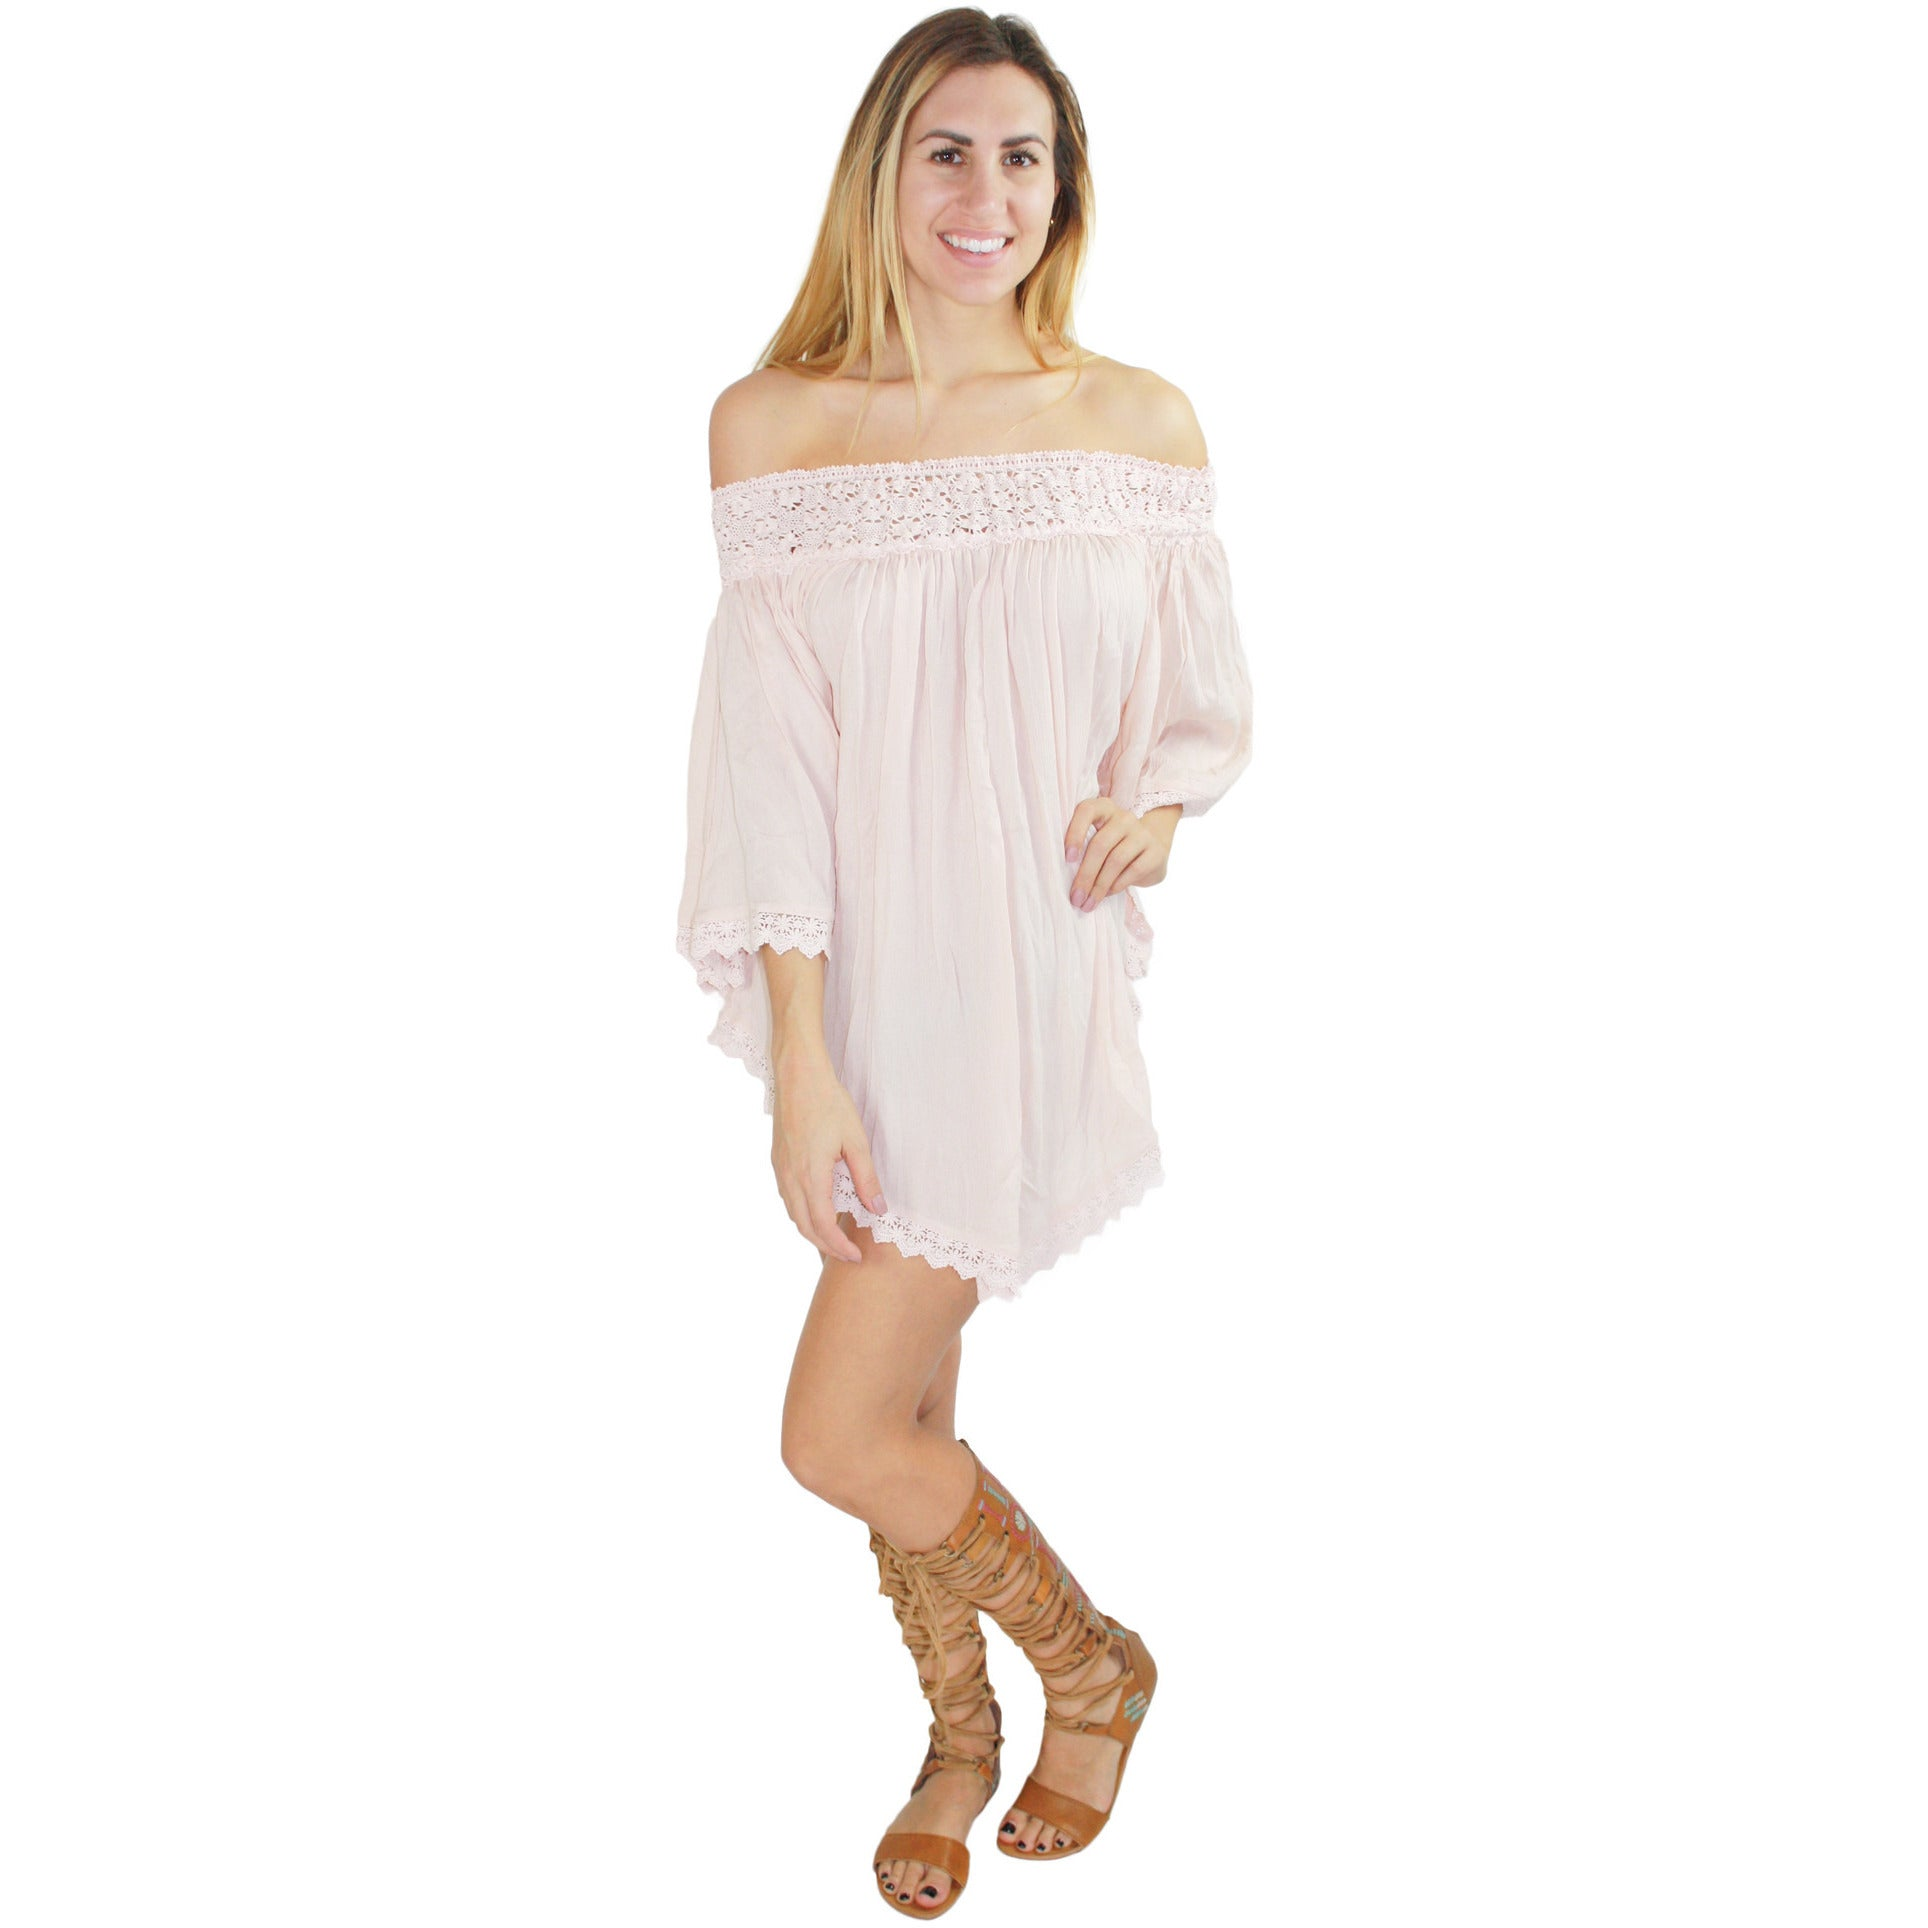 Josie Beach Tunic in Oyster Pink